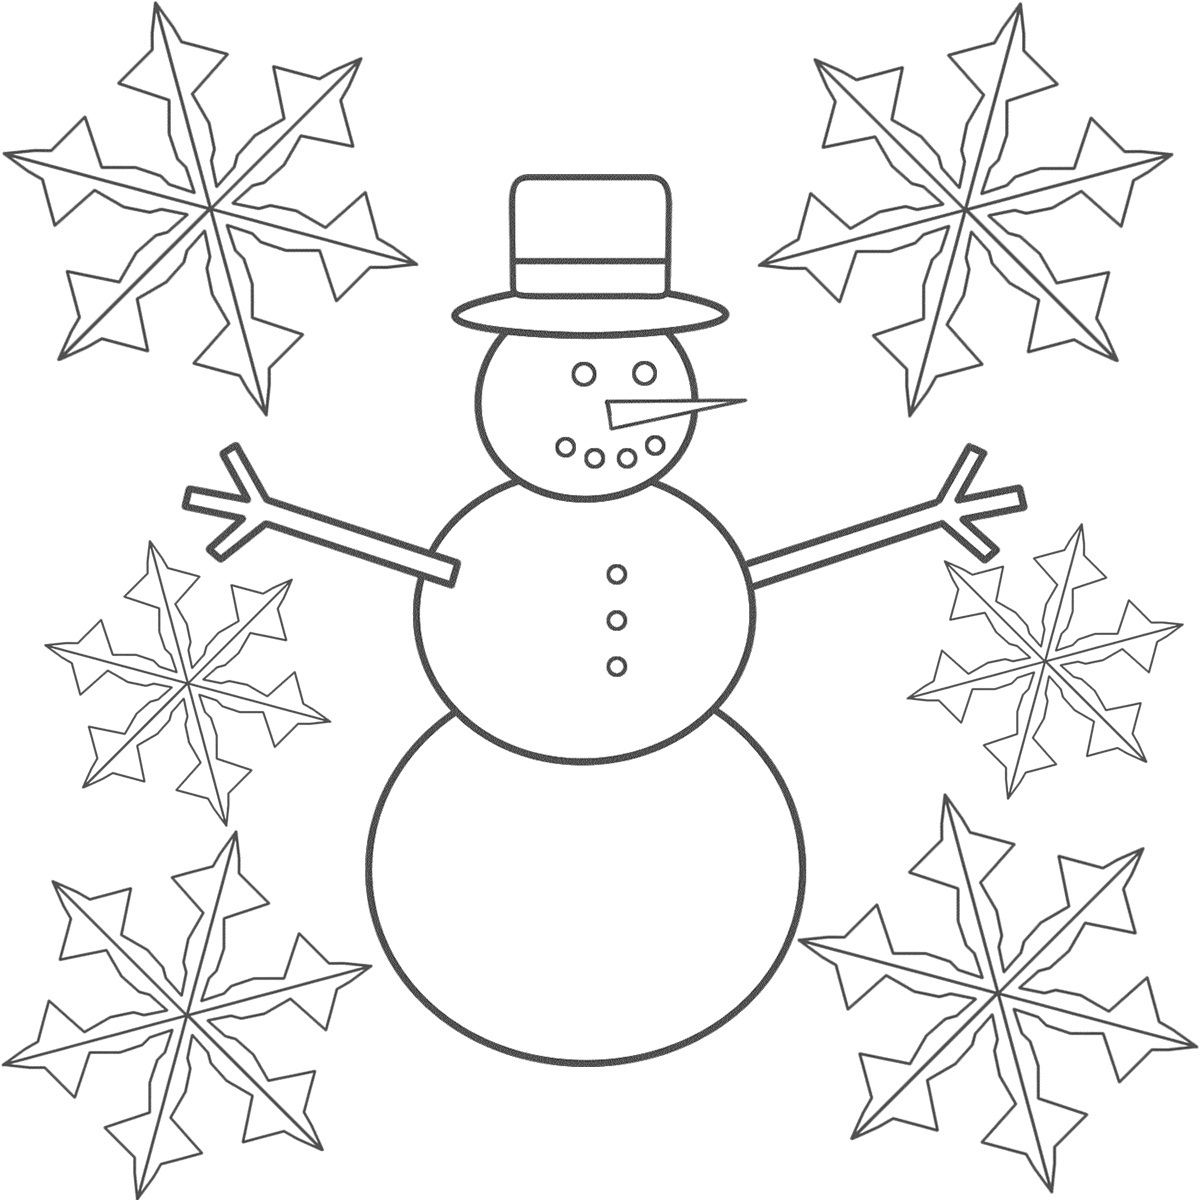 This is a photo of Exhilarating snowflakes coloring pages printable